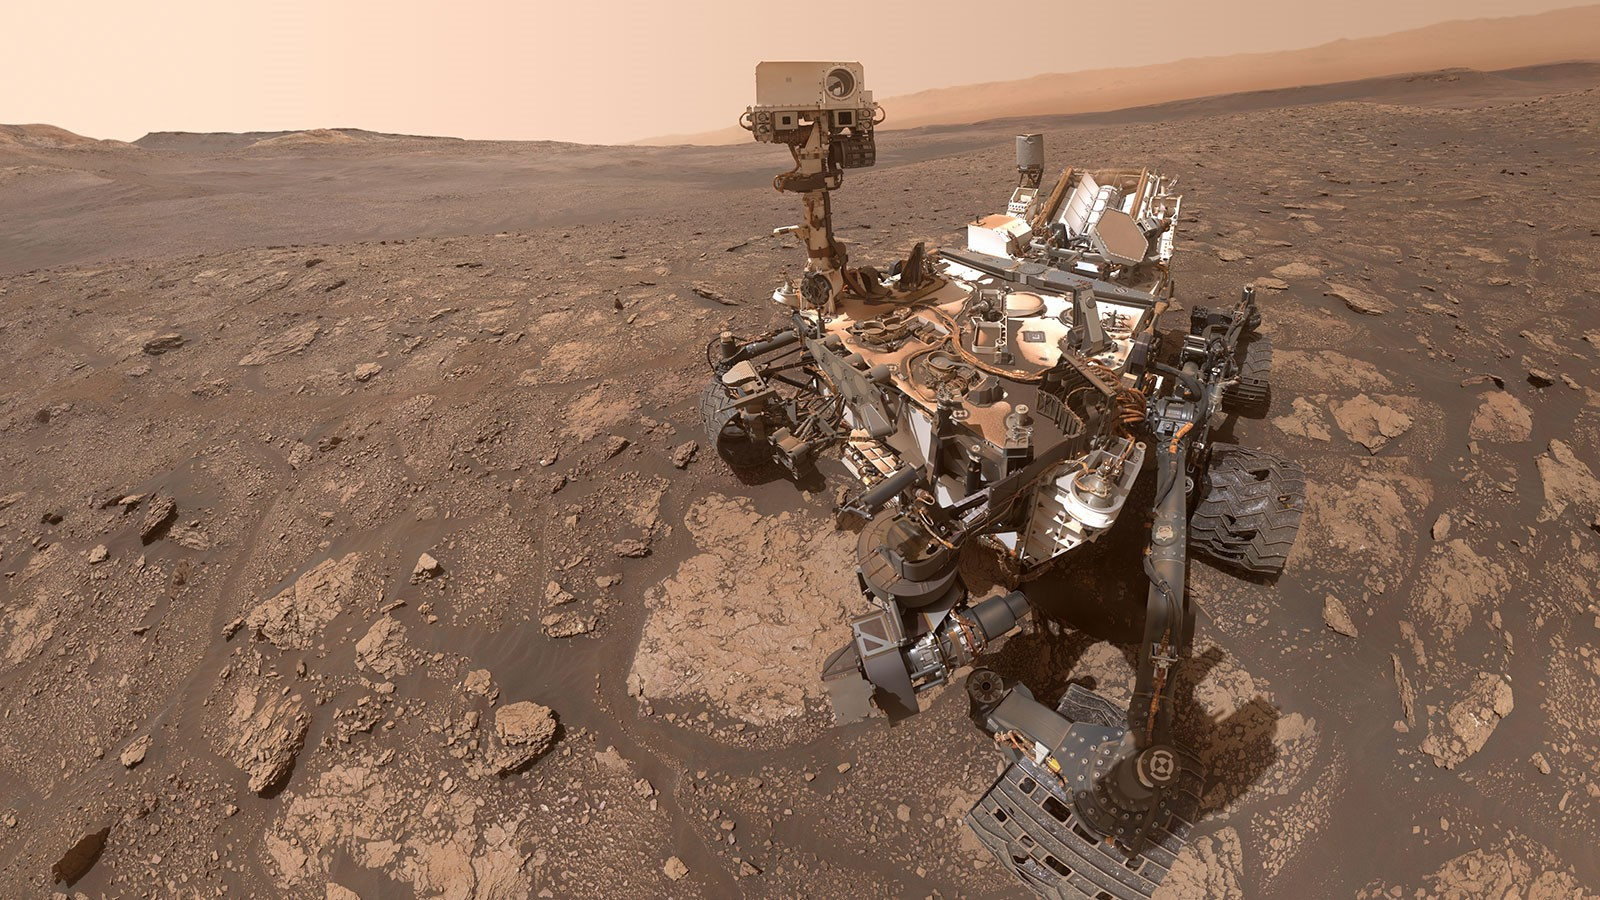 : Curiosity at Mary Anning, Gale Crater